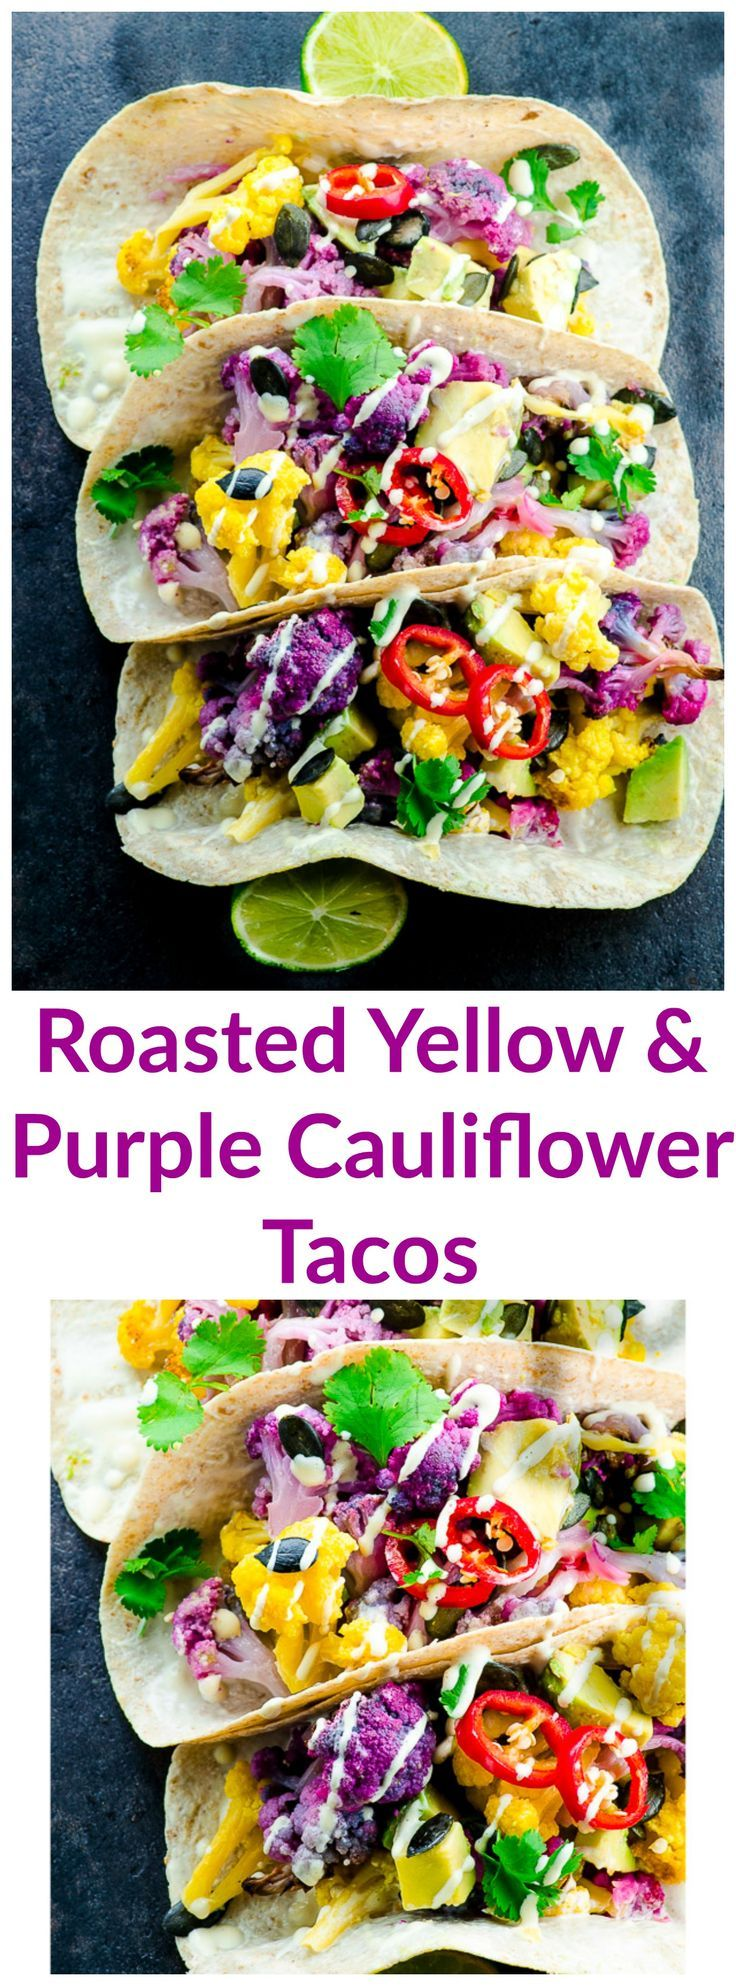 Roasted Yellow and Purple Cauliflower Tacos … And A Follow Up On Our Moral Dilemma